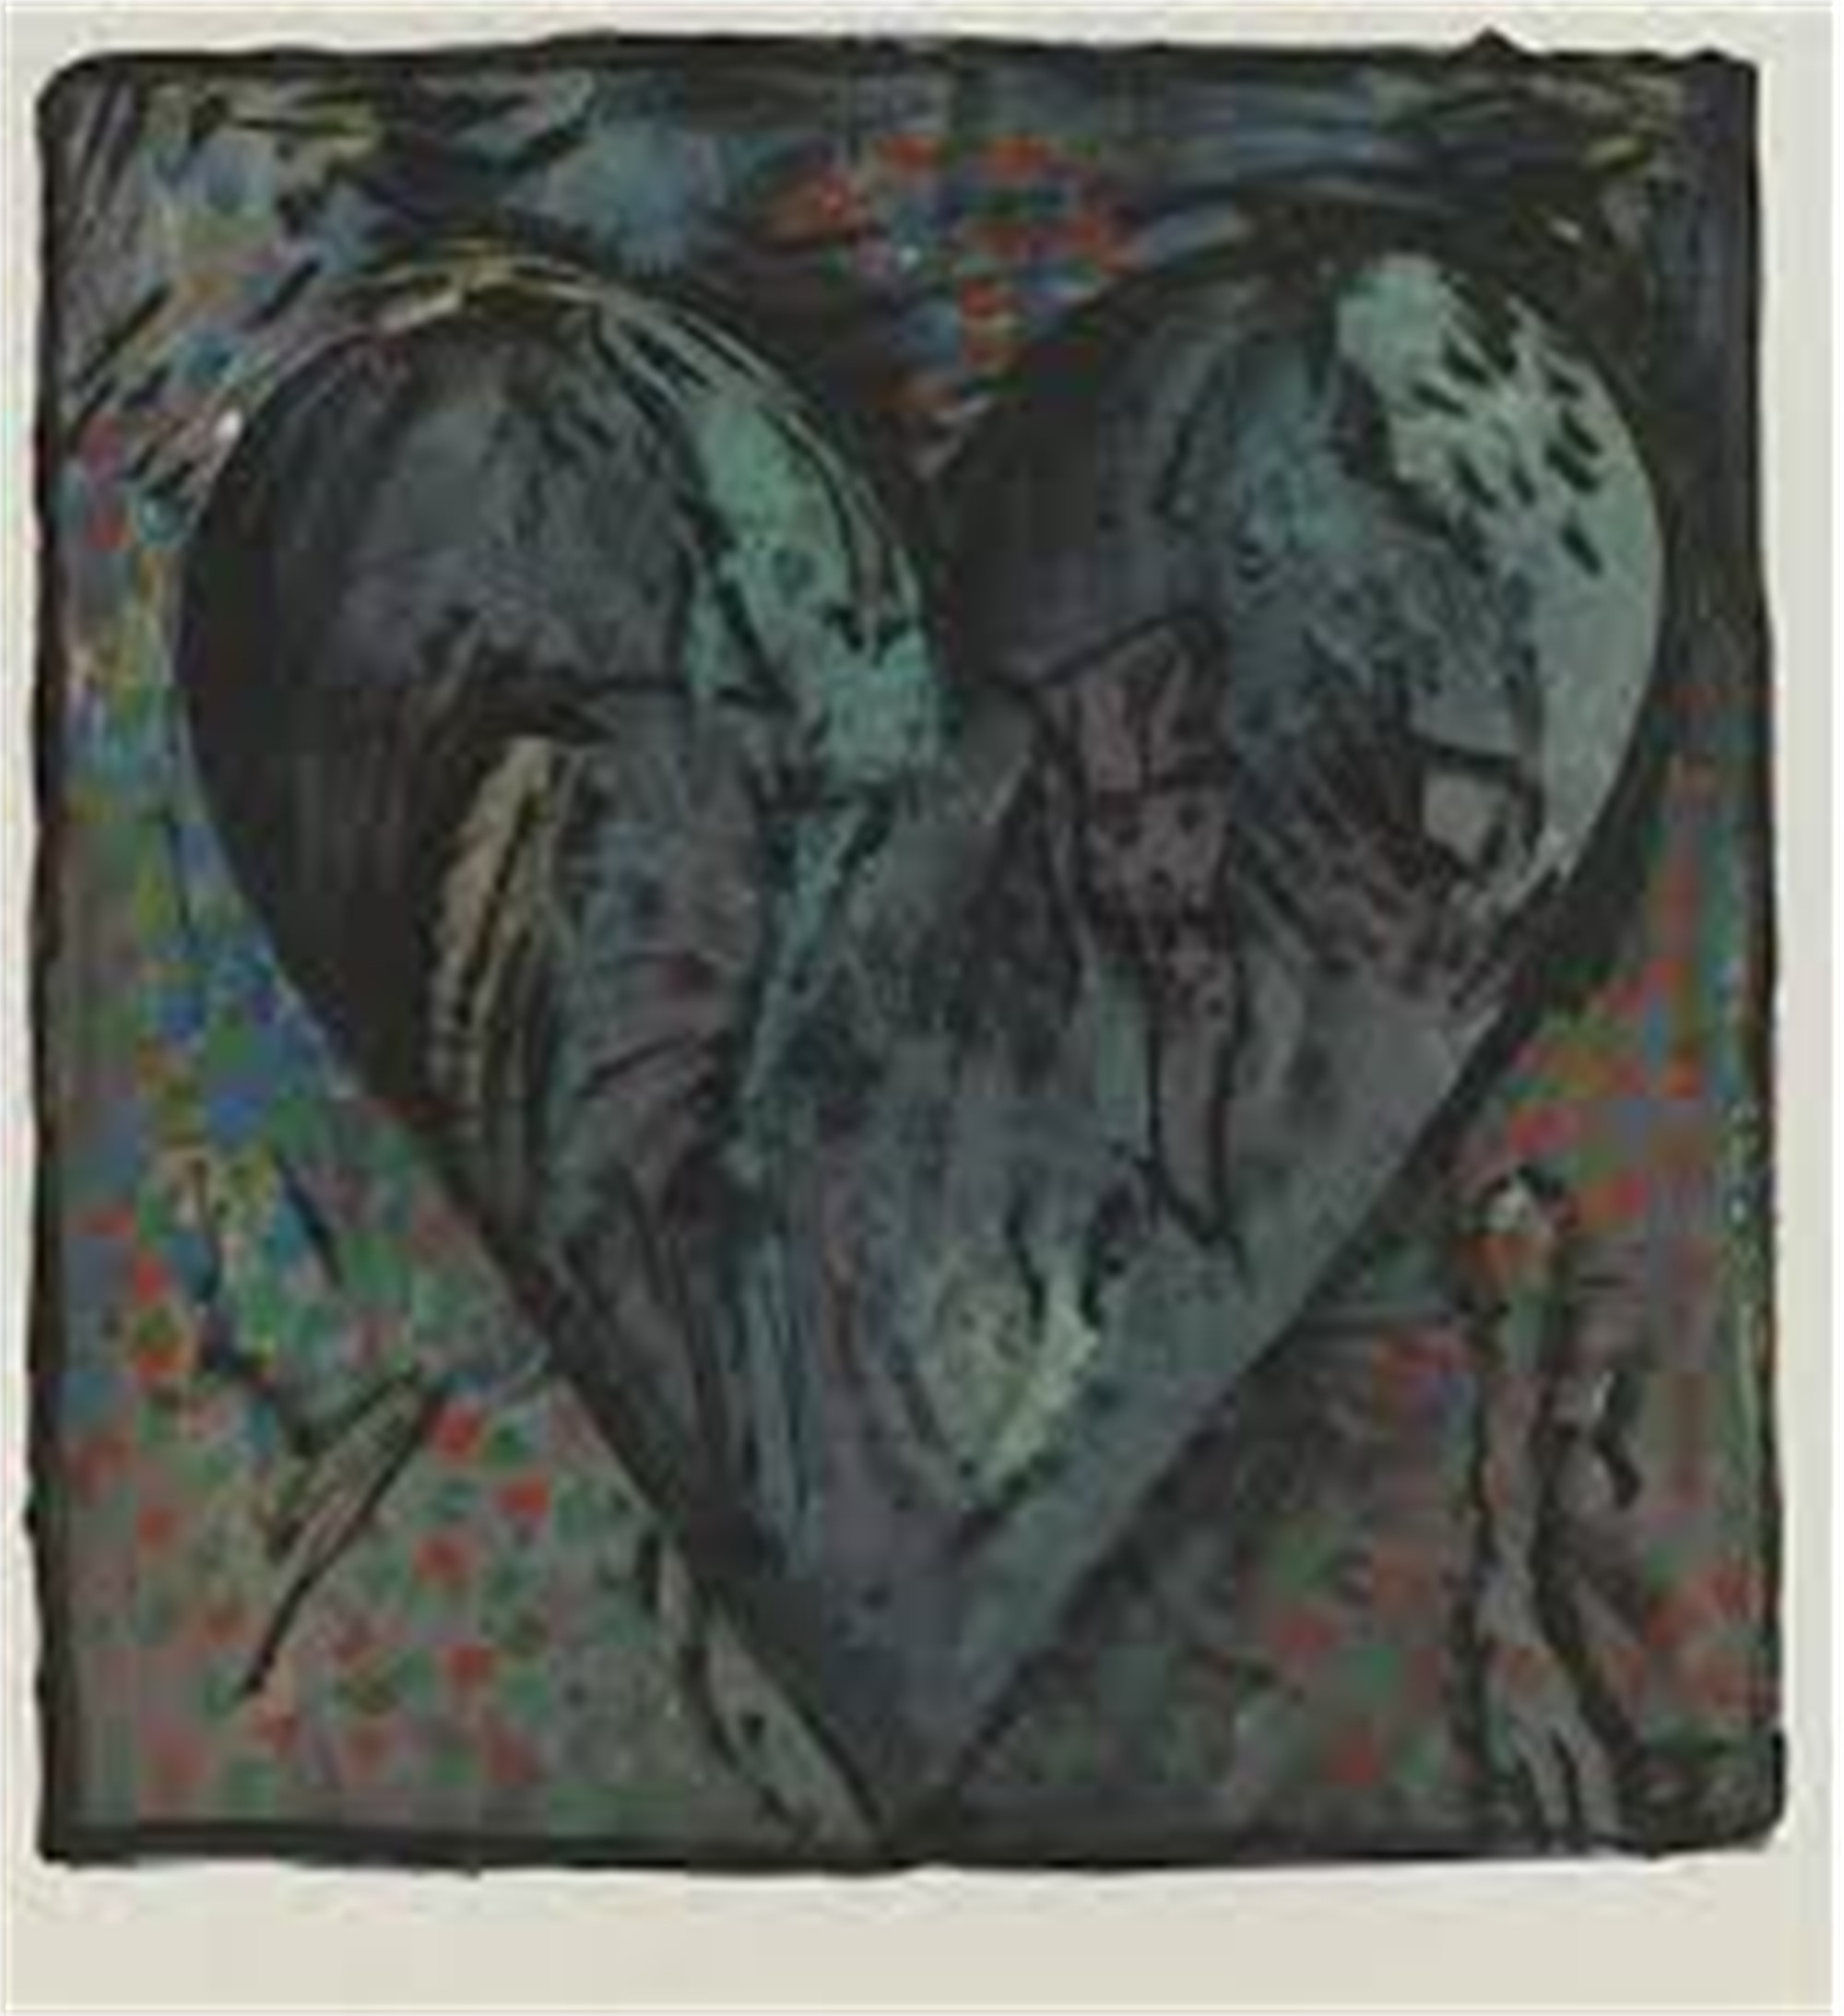 The Hand Colored Viennese Hearts VI by Jim Dine